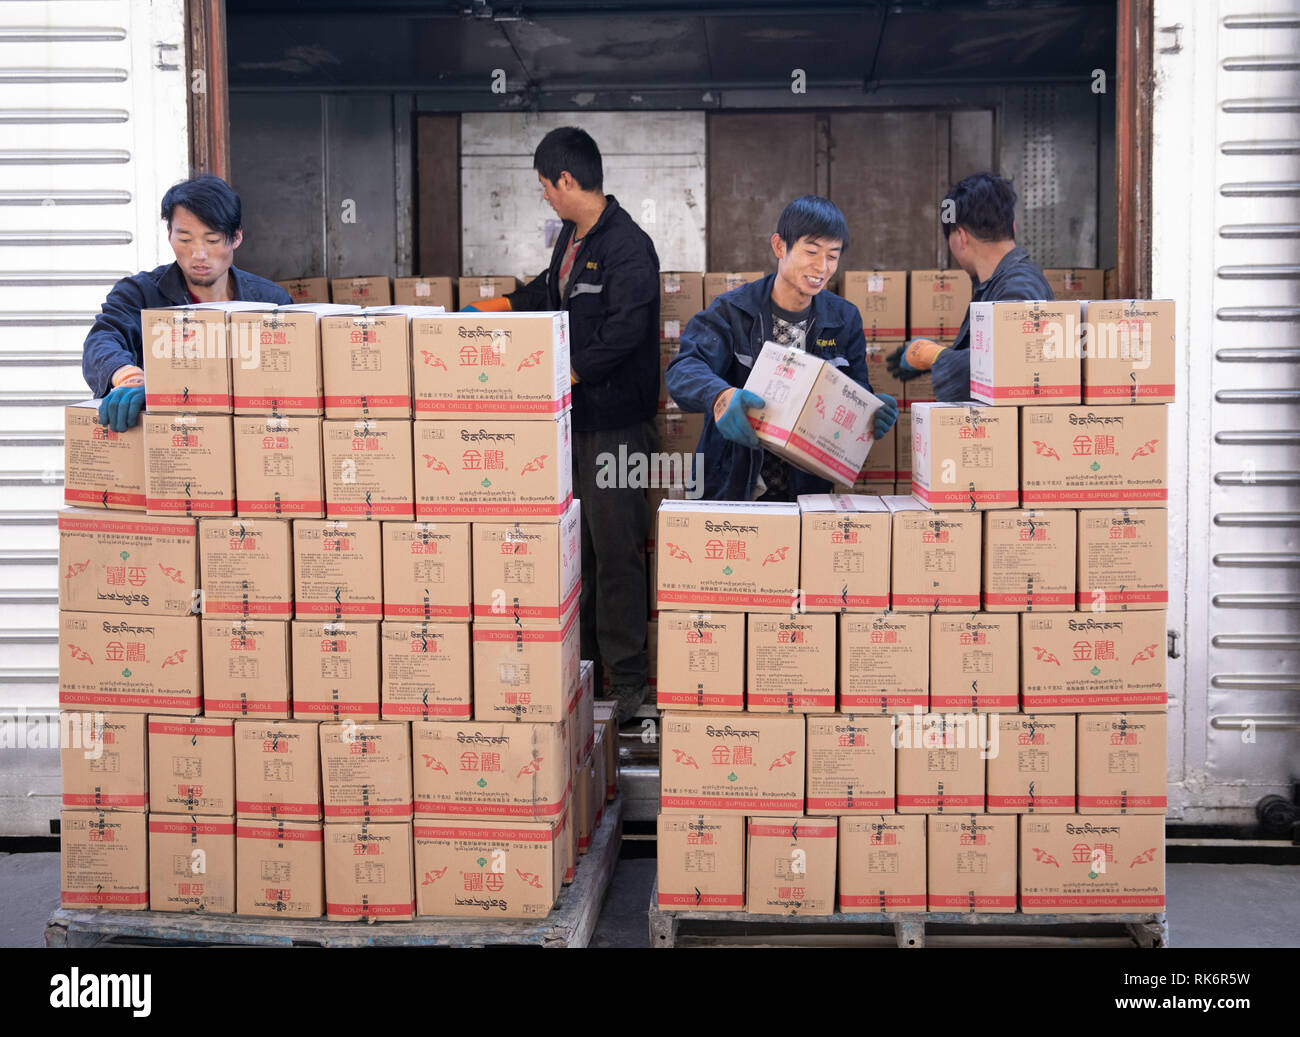 Guangzhou, China's Tibet Autonomous Region. 27th Jan, 2019. Workers unload boxes of butter from the 7220190 refrigerator train at the Lhasa West Railway Station in Lhasa, capital of southwest China's Tibet Autonomous Region, Jan. 27, 2019. Credit: Wu Tao/Xinhua/Alamy Live News - Stock Image